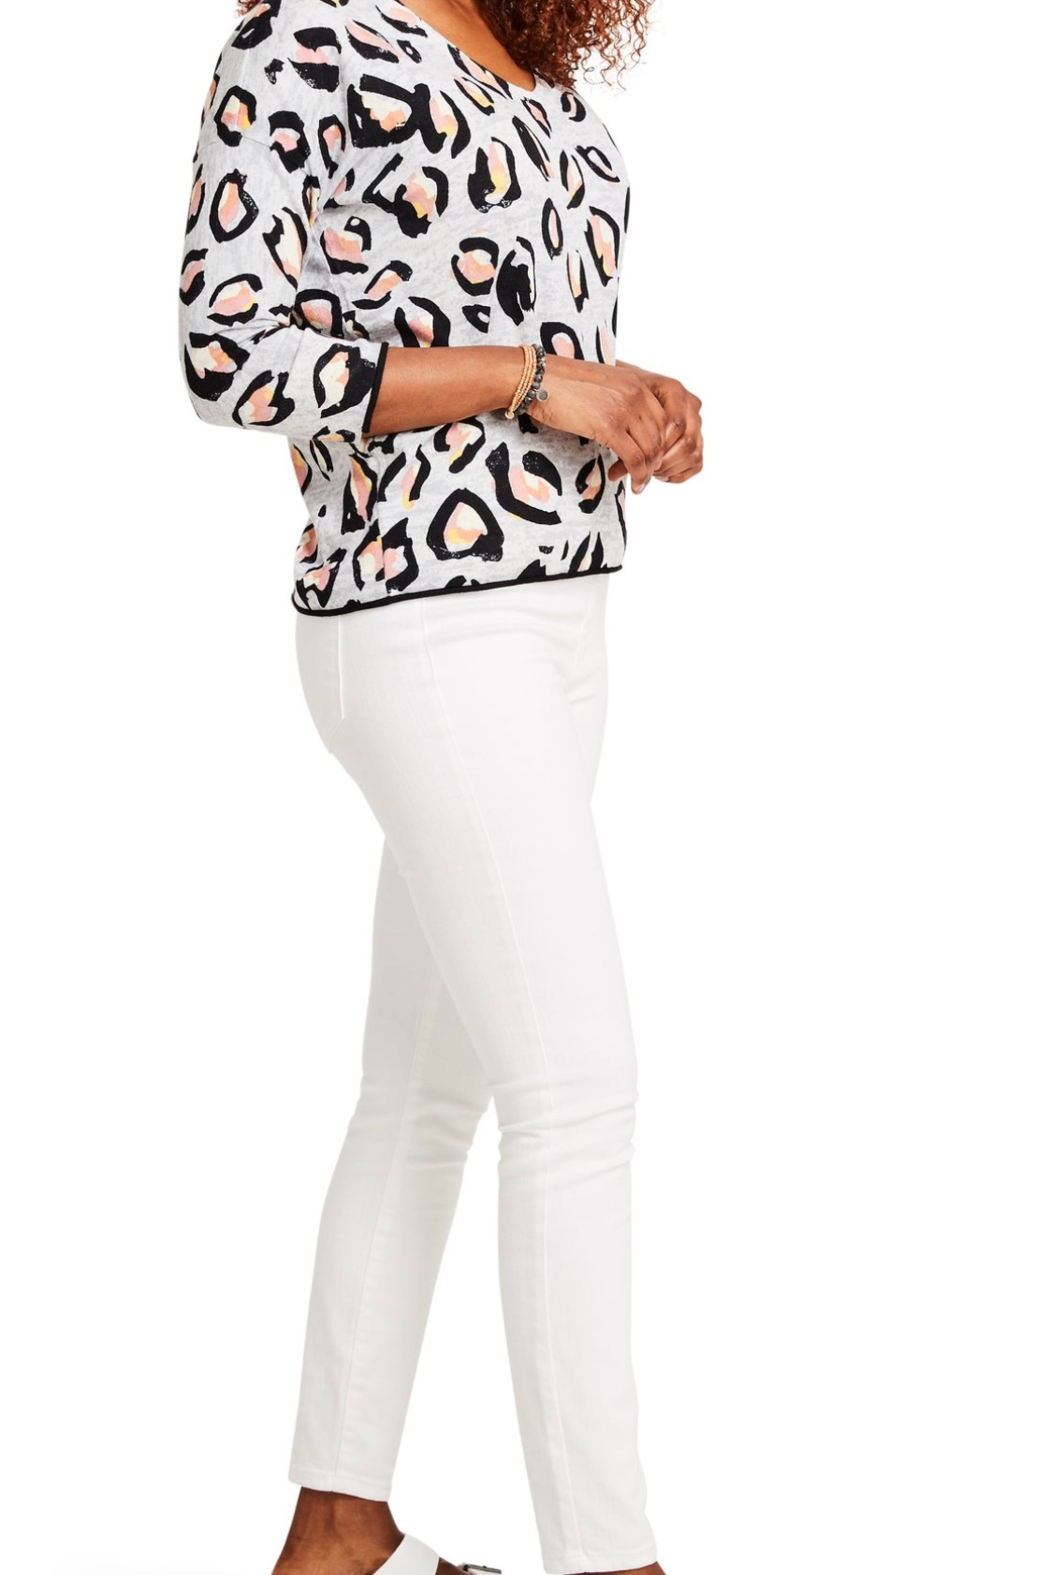 Nic + Zoe Pink Multi Knit Top, 3/4 sleeves. V-neck. - Front Full Image